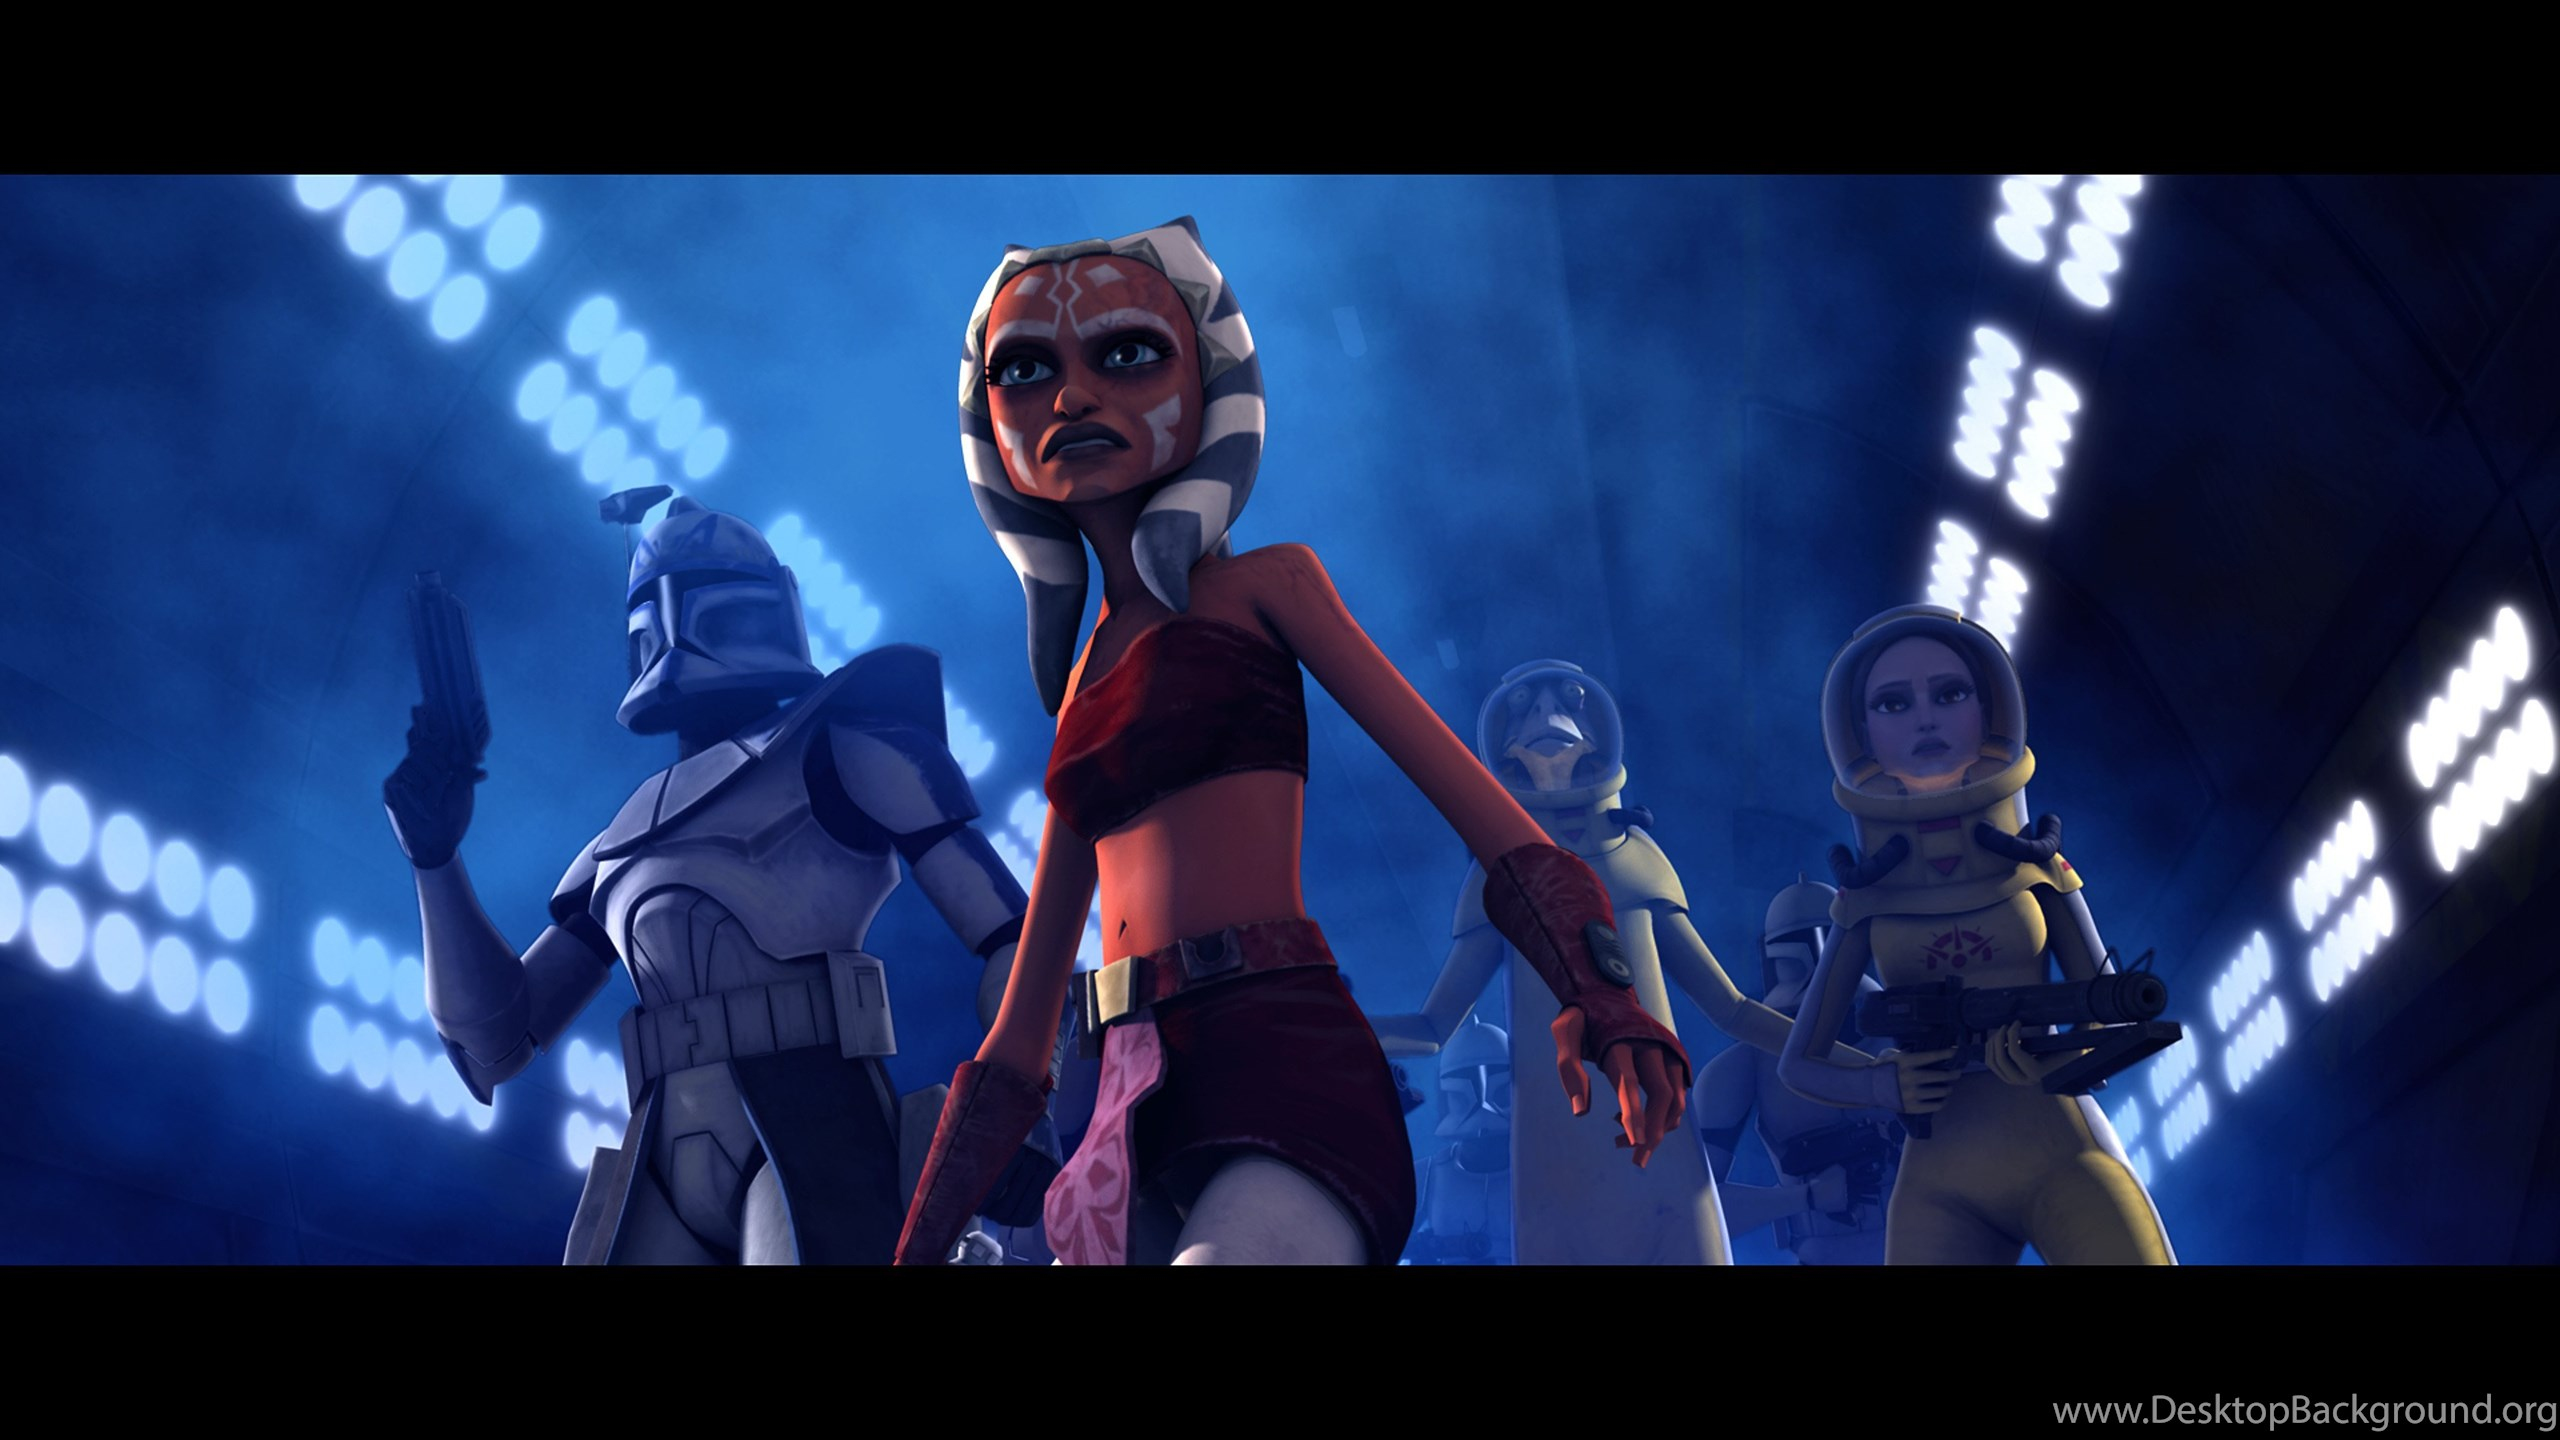 527362 star wars clone wars animation sci fi cartoon